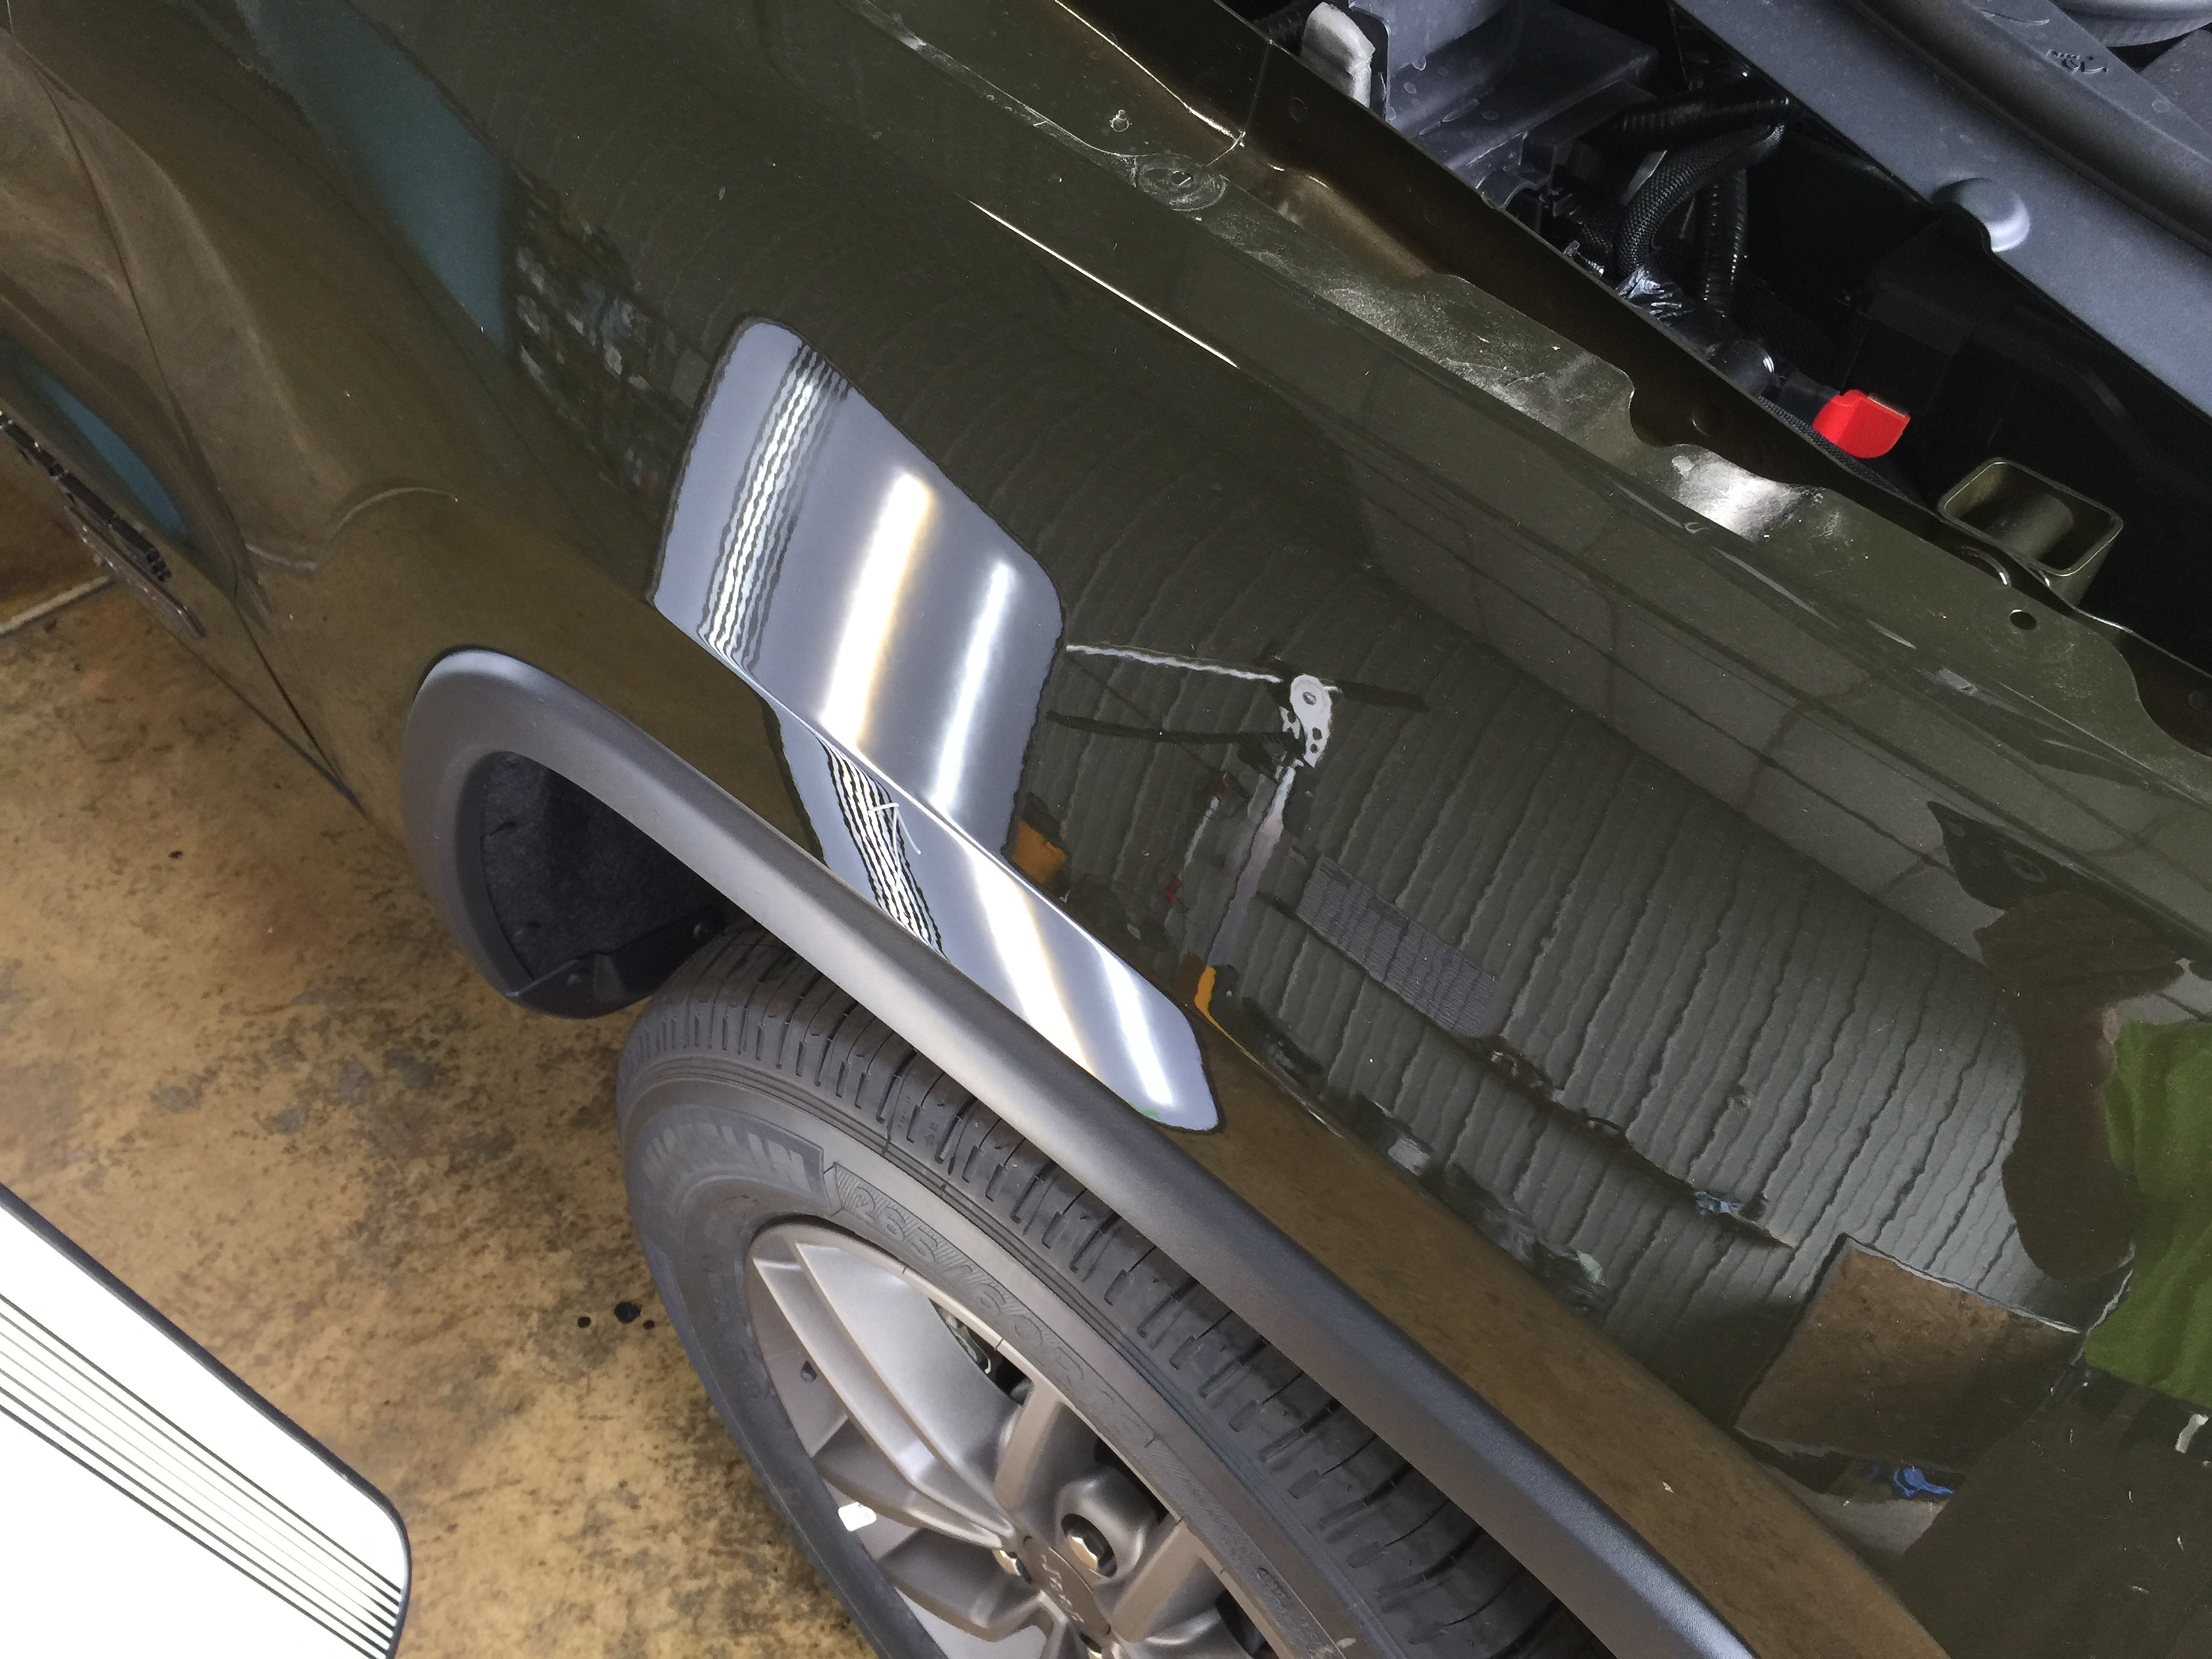 2016 Jeep Grand Cherokee Fender Dent Removed with Paintless Dent Removal, Springfield, IL, http://217dent.com